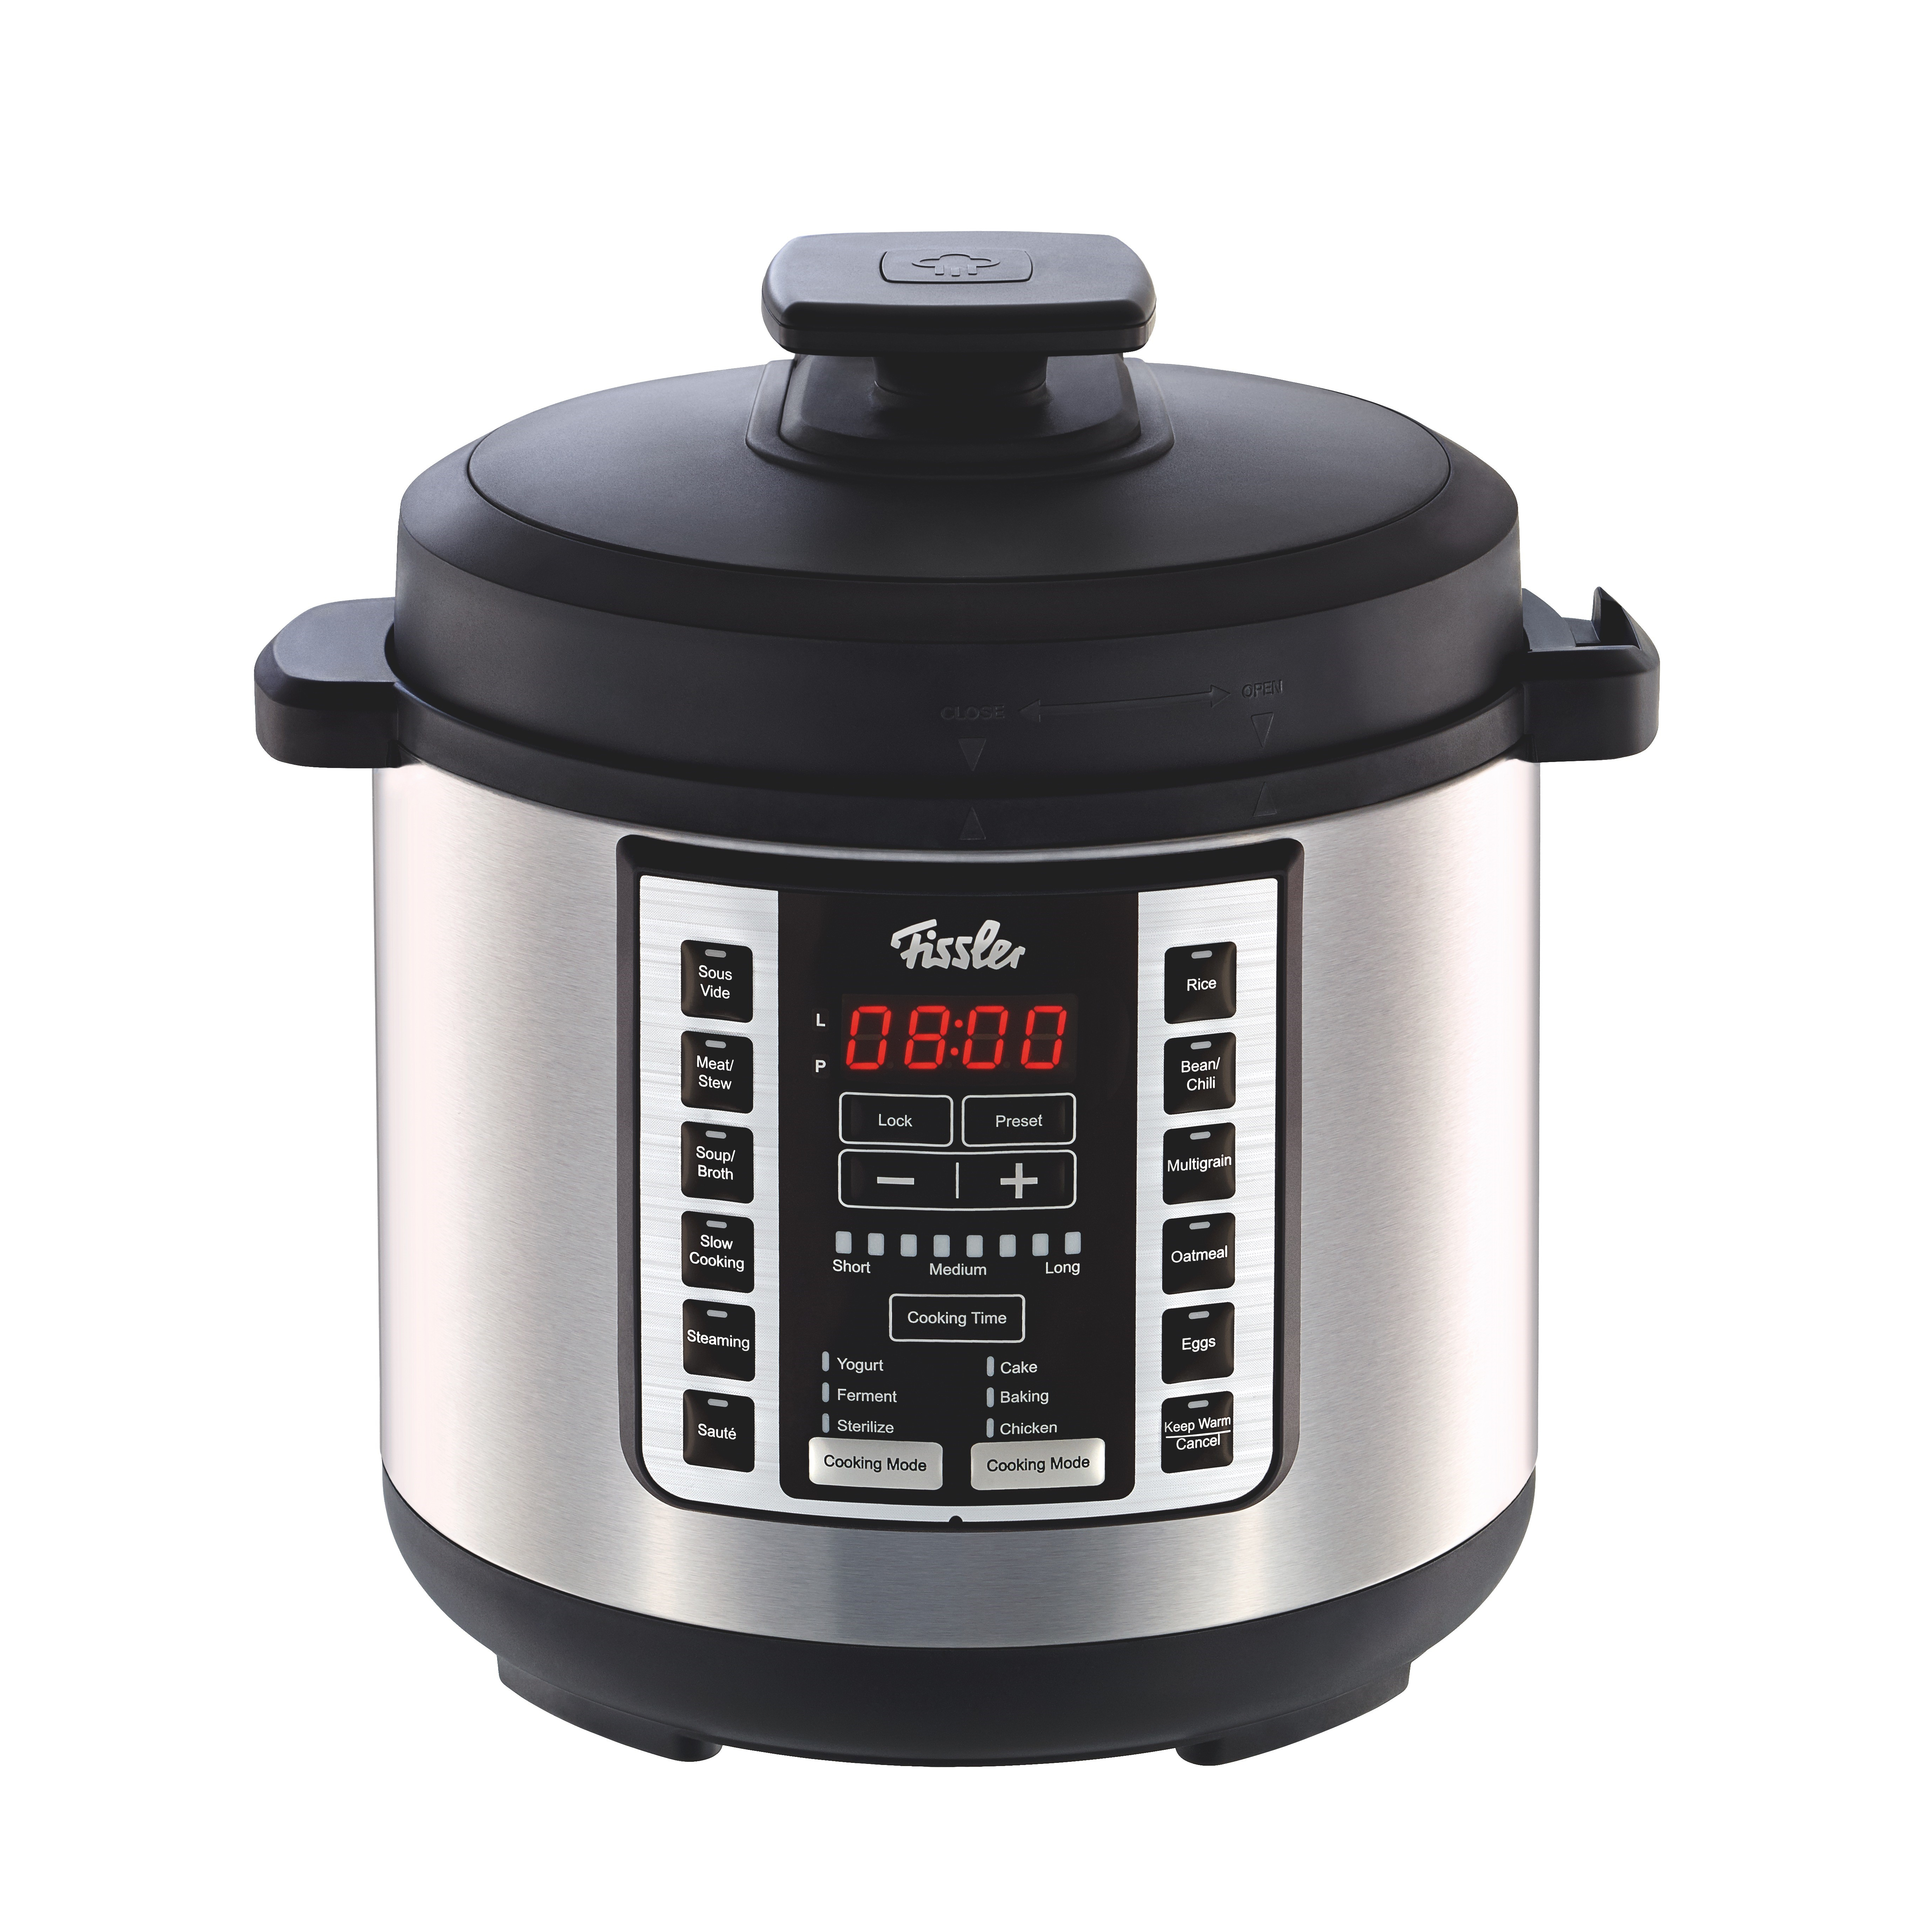 Fissler Stainless Steel Souspreme Electronic Multicooker with 18 Cooking Programs